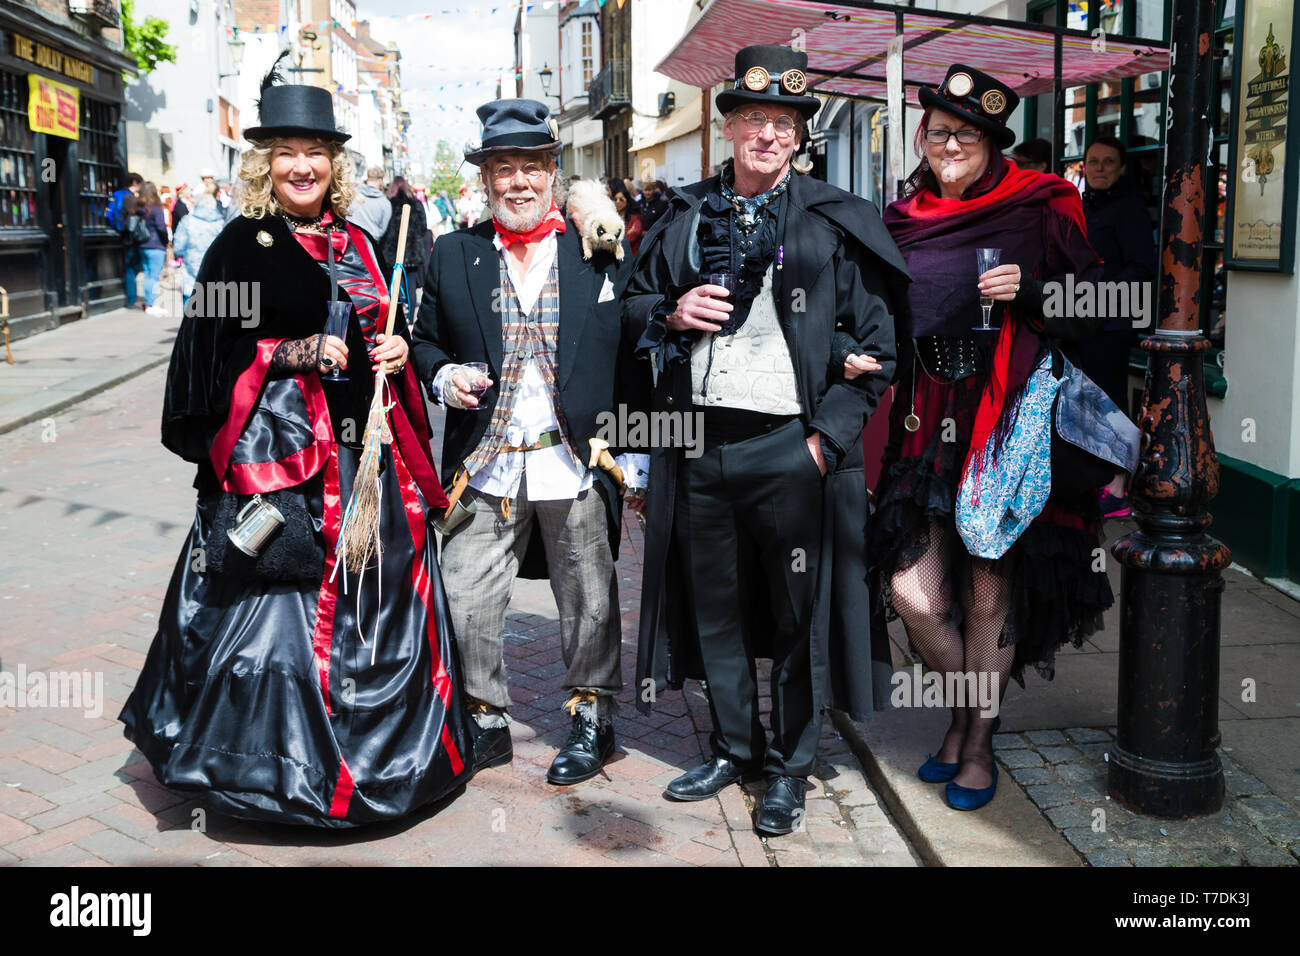 Sweeps Festival Rochester,Kent, UK. 4th May 2019. A group of men and woman in victorian clothing celebrating the festival. - Stock Image